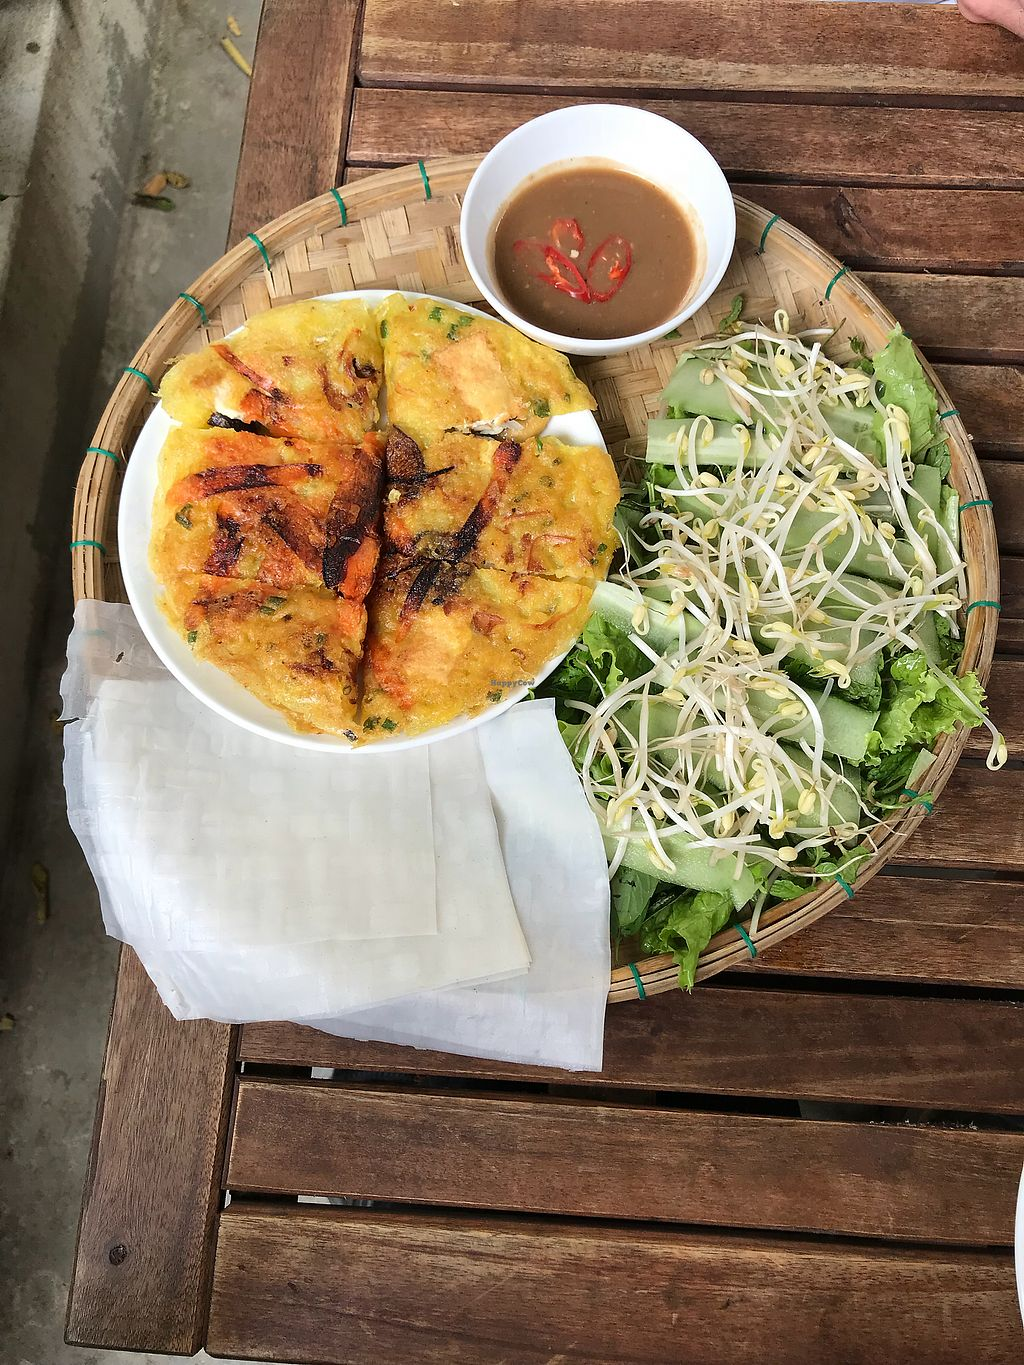 """Photo of What Else Cafe  by <a href=""""/members/profile/vegetariangirl"""">vegetariangirl</a> <br/>Savoury vegan crepe <br/> January 20, 2018  - <a href='/contact/abuse/image/101159/348753'>Report</a>"""